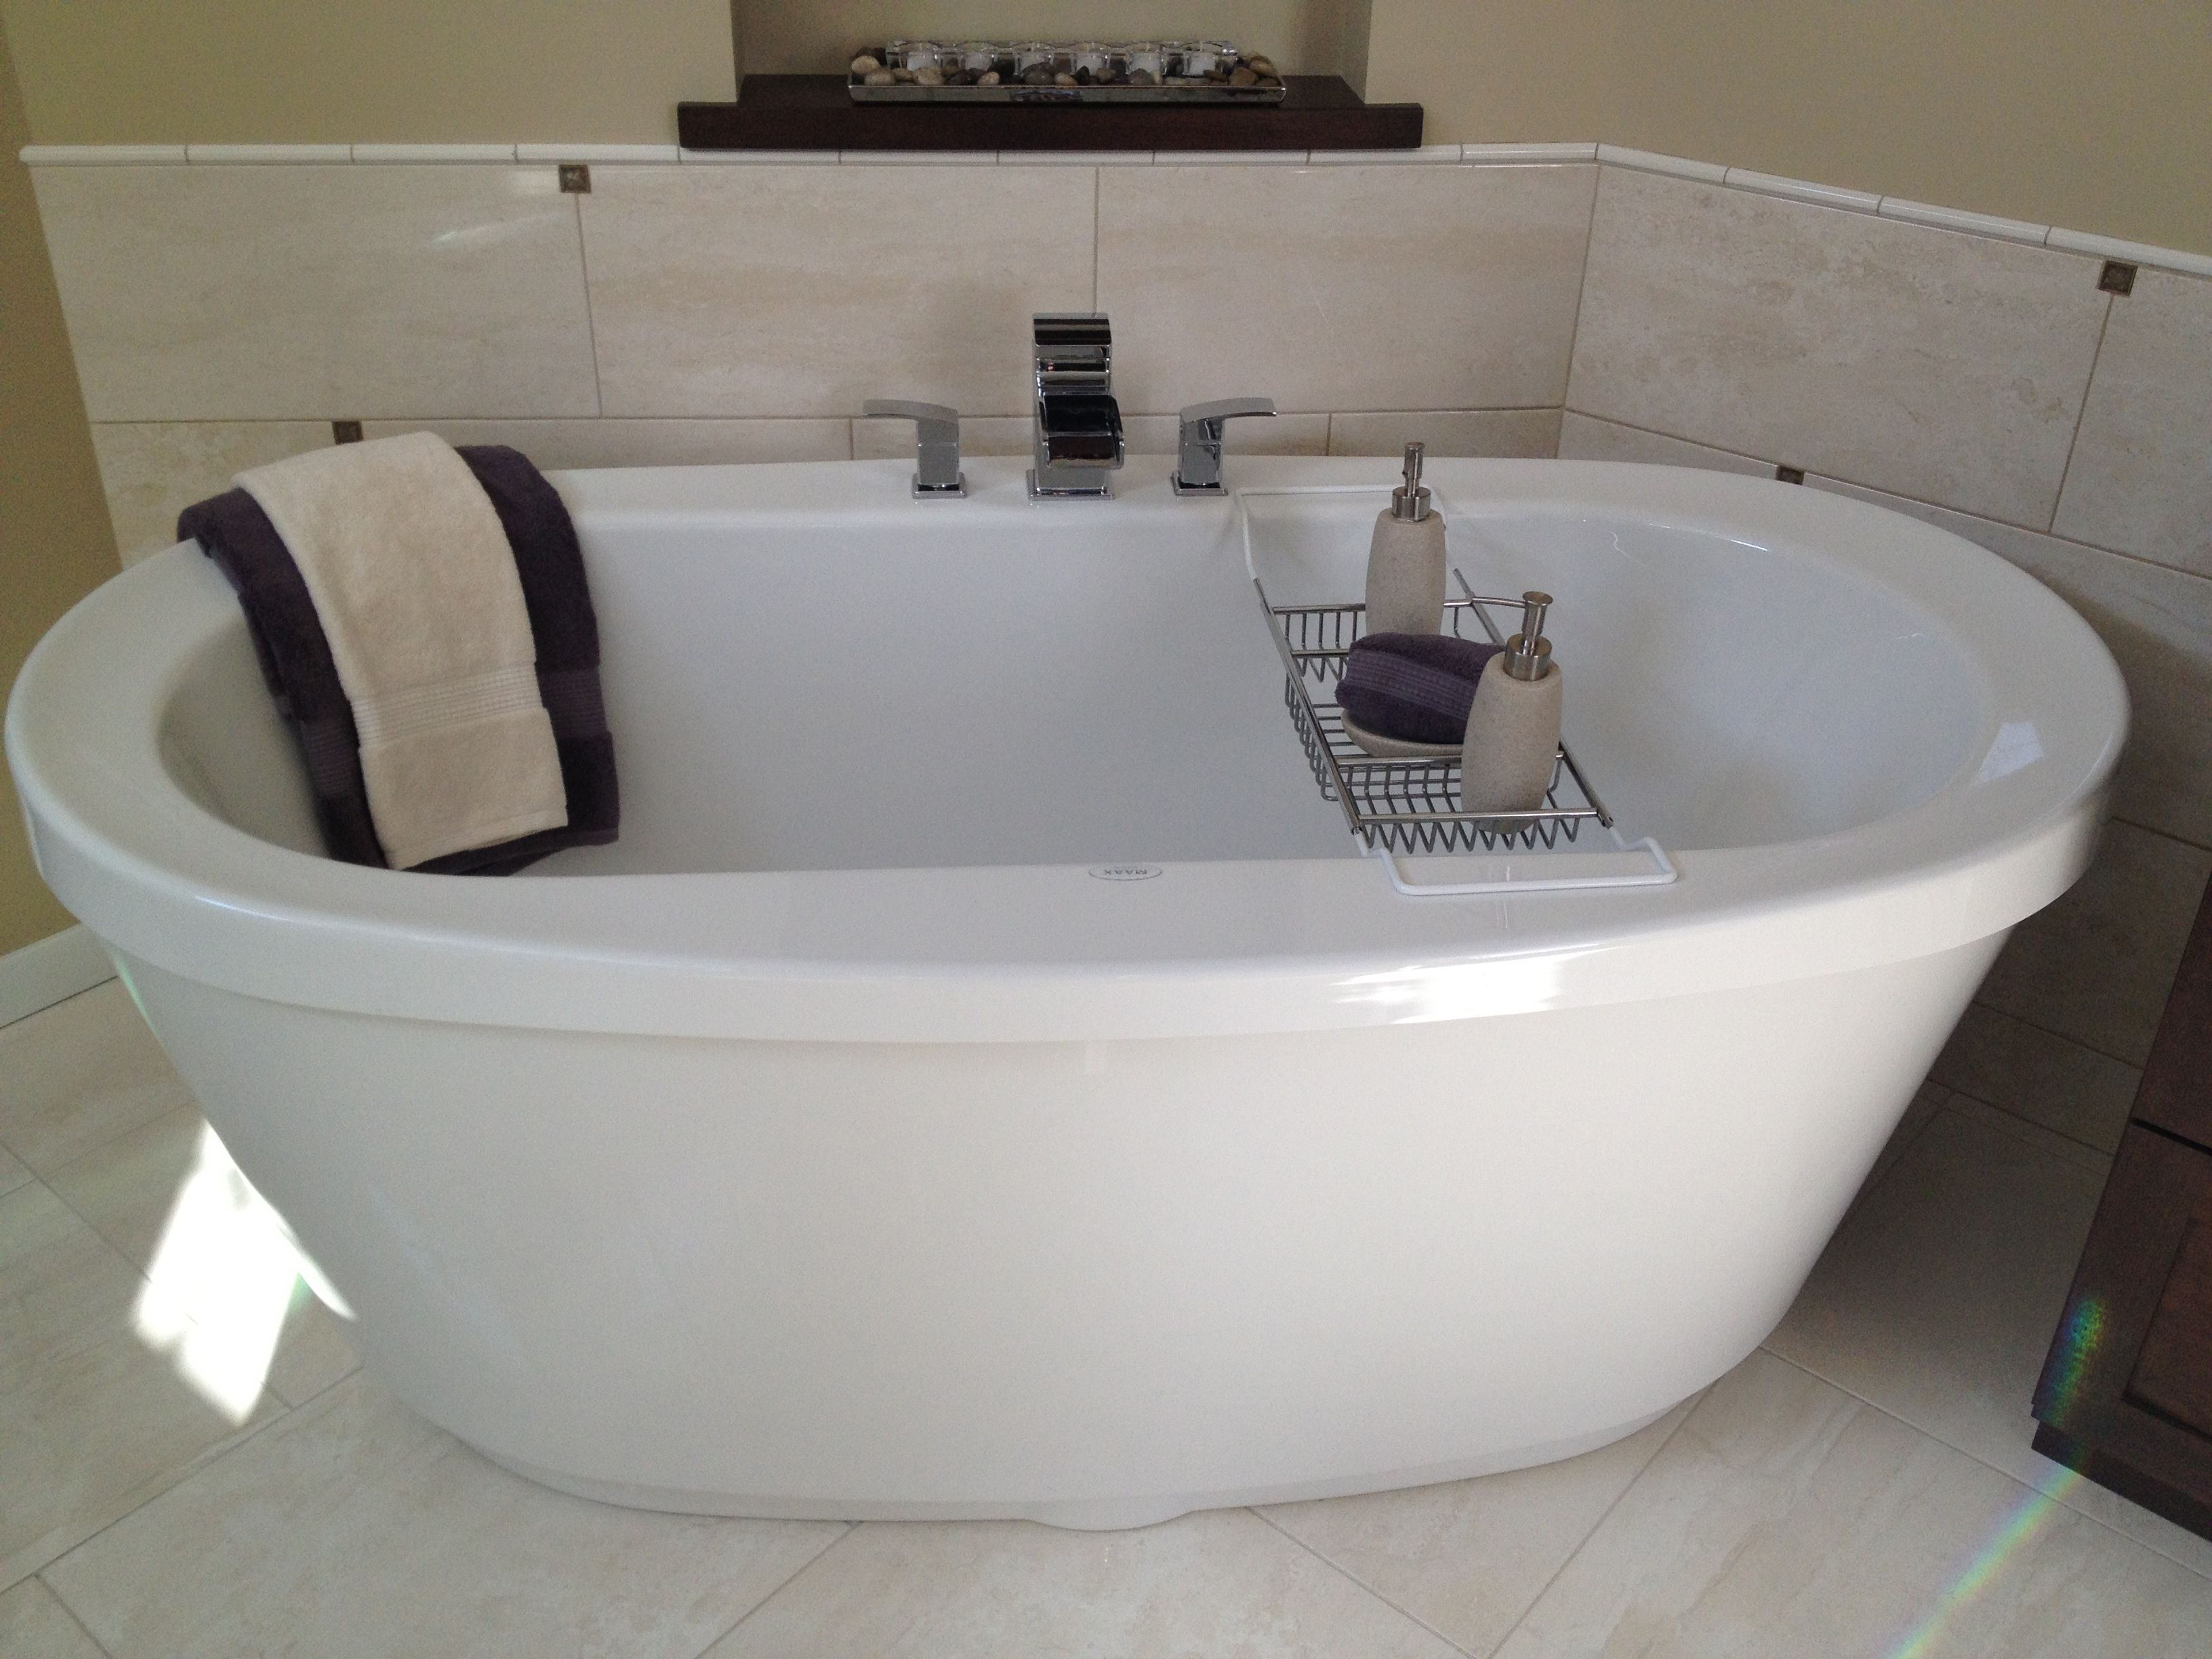 Most Comfortable Freestanding Tub.Maxx Tub The Most Comfortable Tub Ever Home Bath